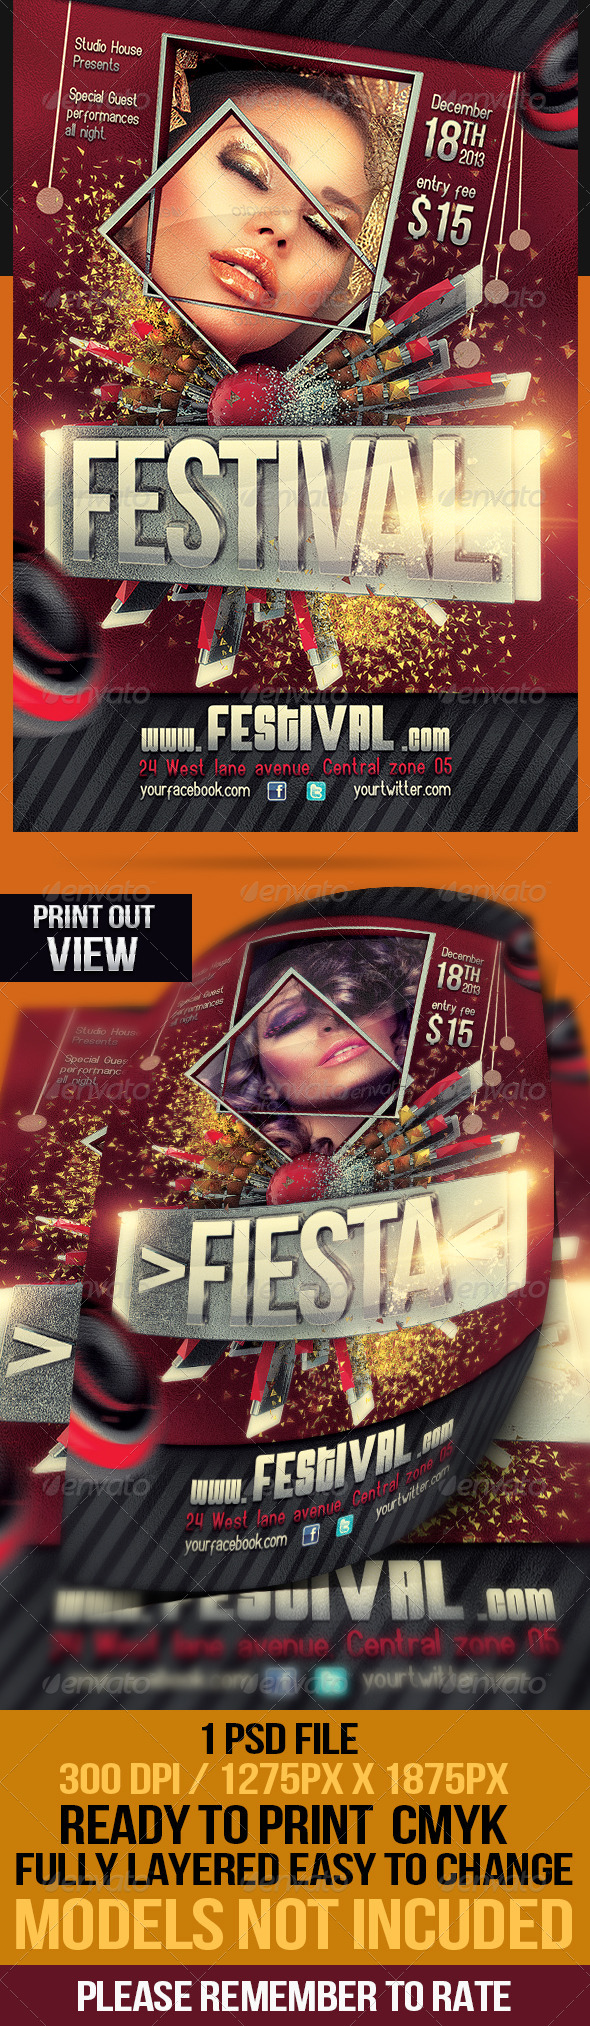 Festival Fiesta Party Flyer - Flyers Print Templates